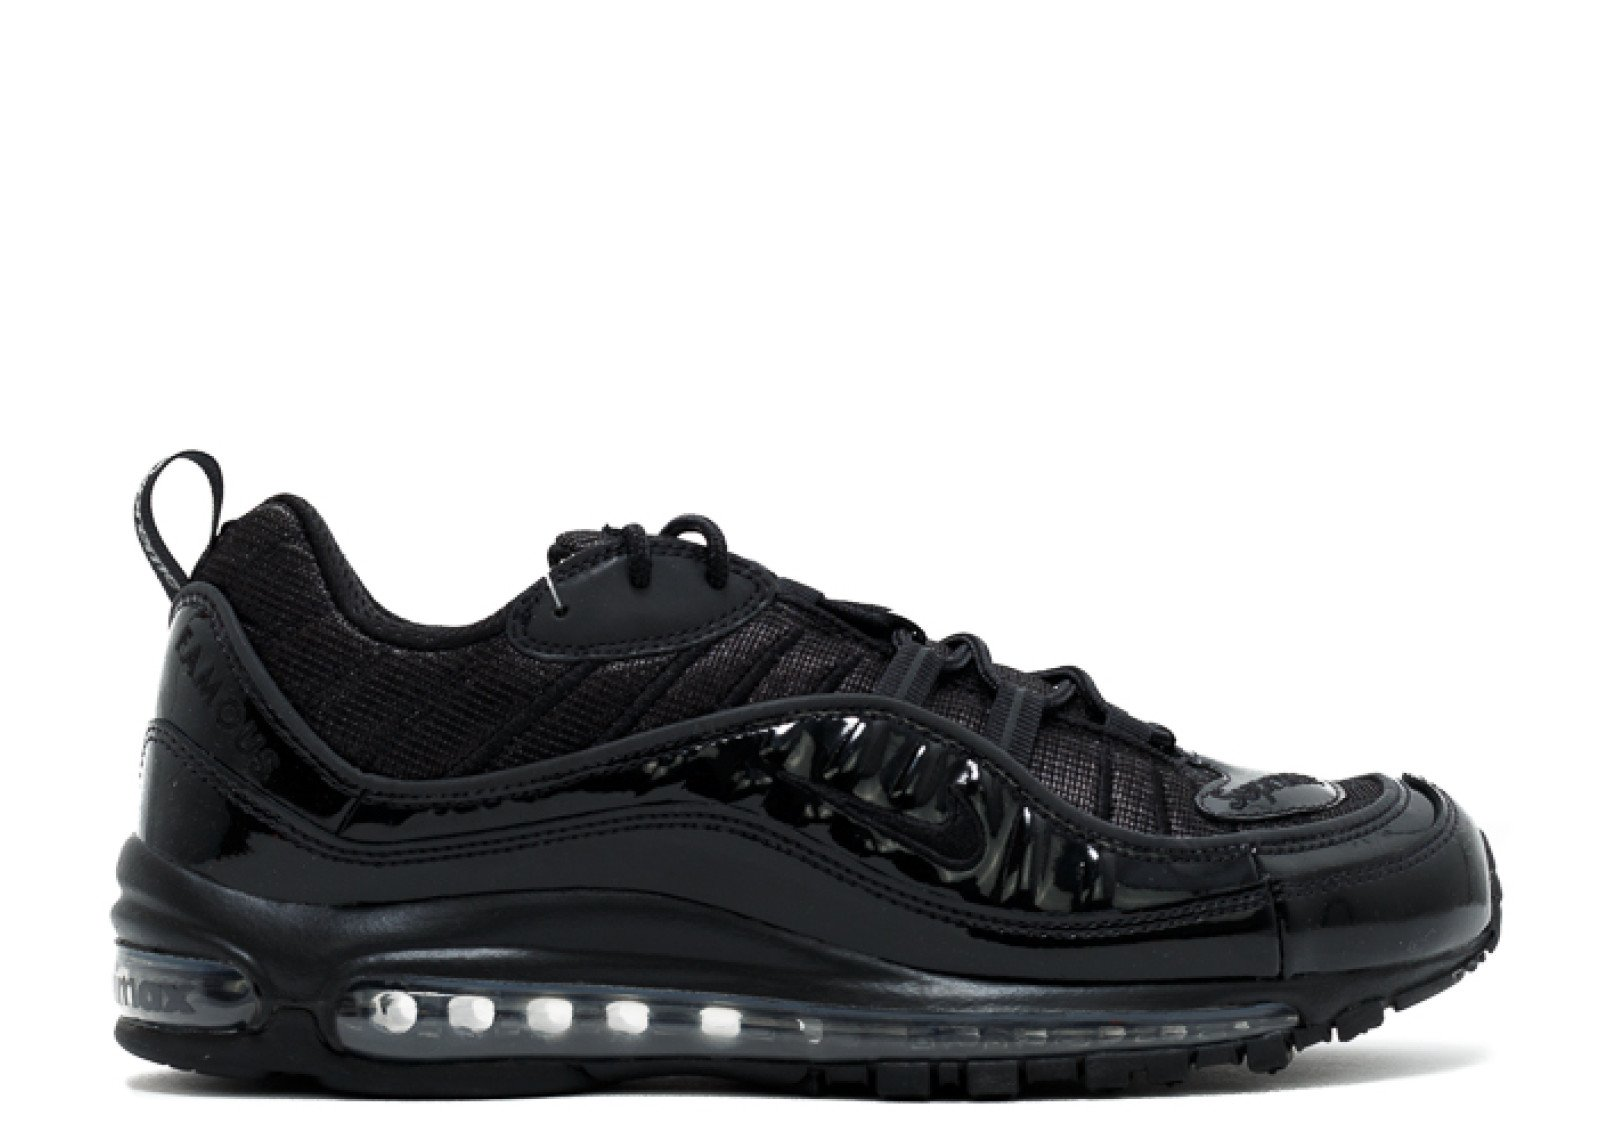 714D9mXX9uL - Nike Men's Air Max 98 / Supreme Running Shoes